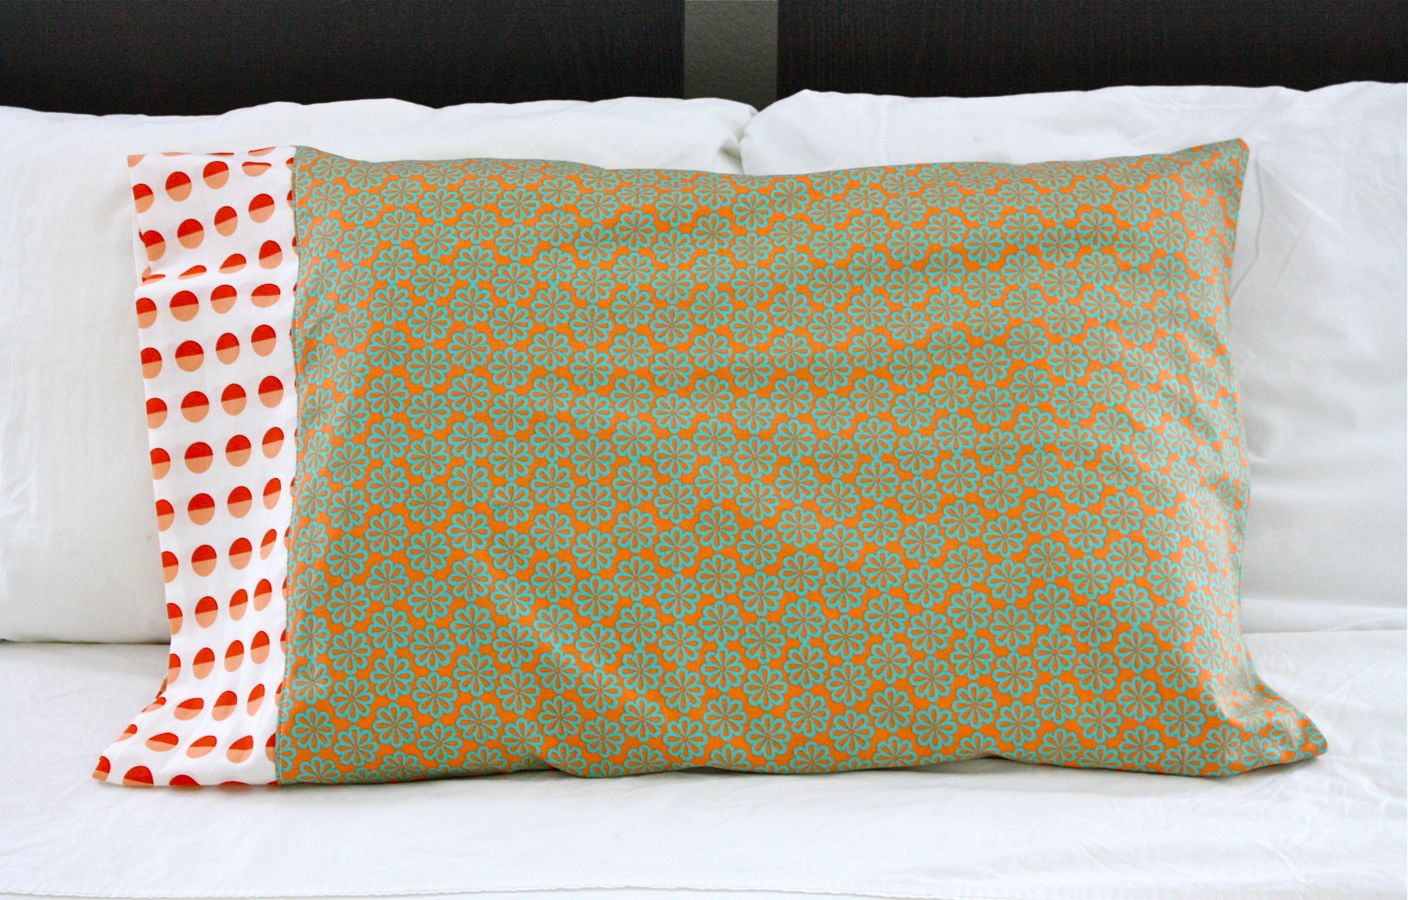 You\u0027re done! One easy pillowcase; one fun looking pillow. & PILLOWCASES \u2013 MADE EVERYDAY pillowsntoast.com